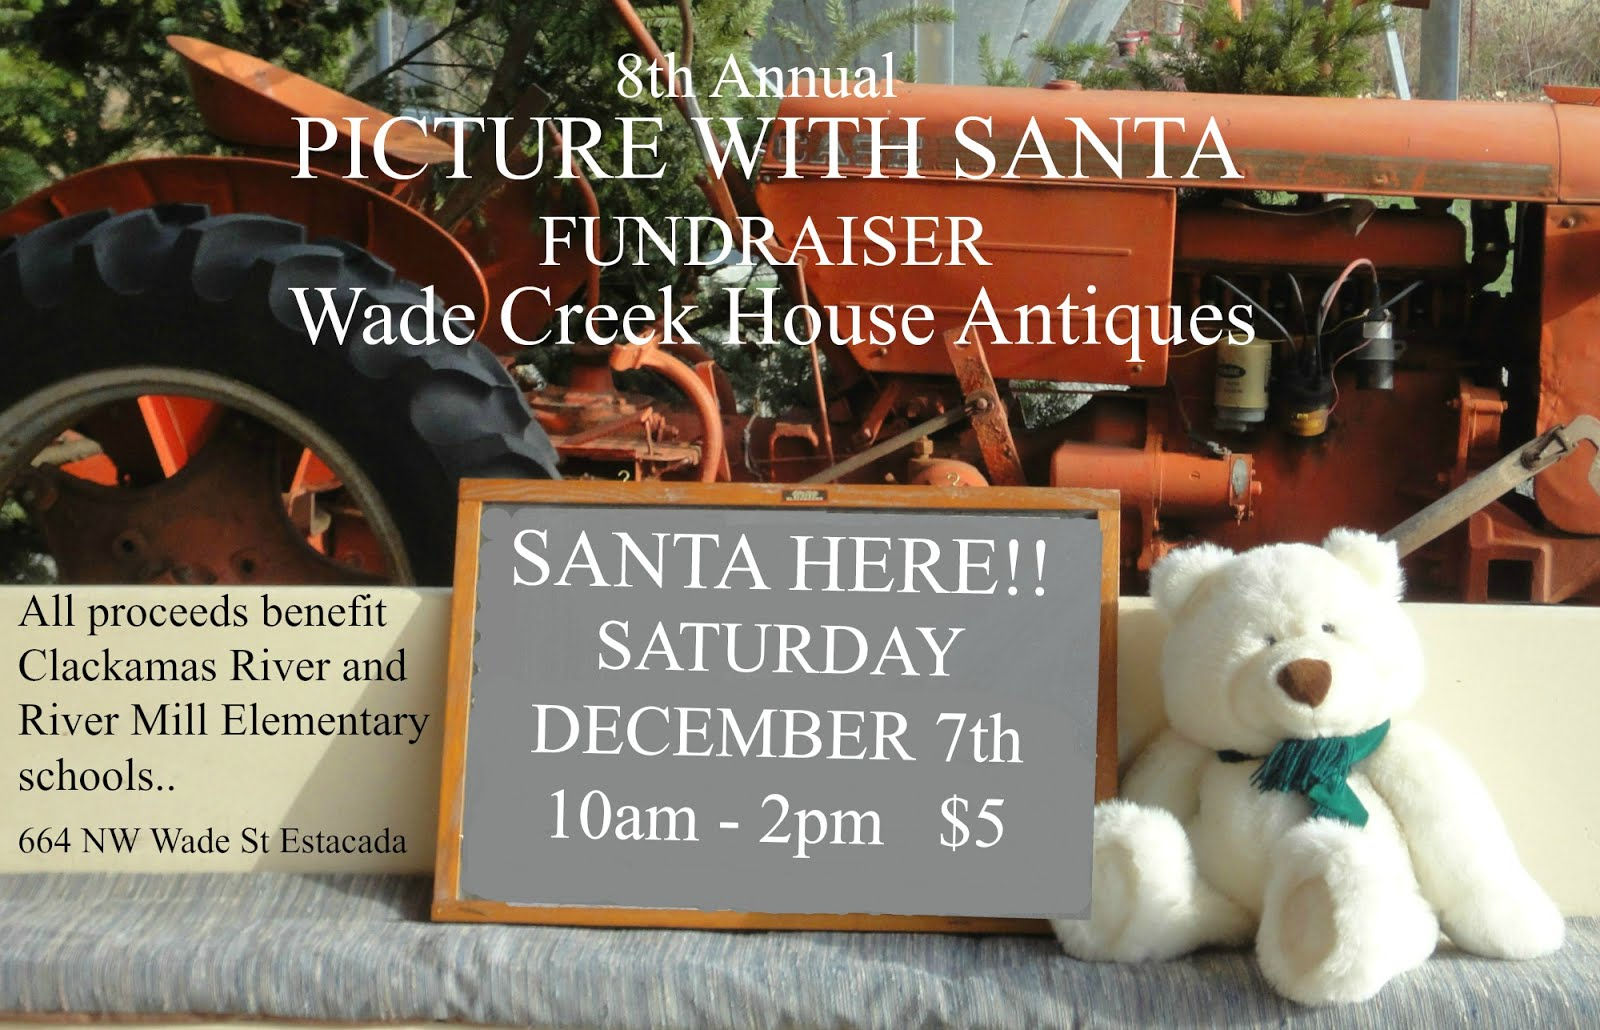 PICTURE WITH SANTA FUNDRAISER